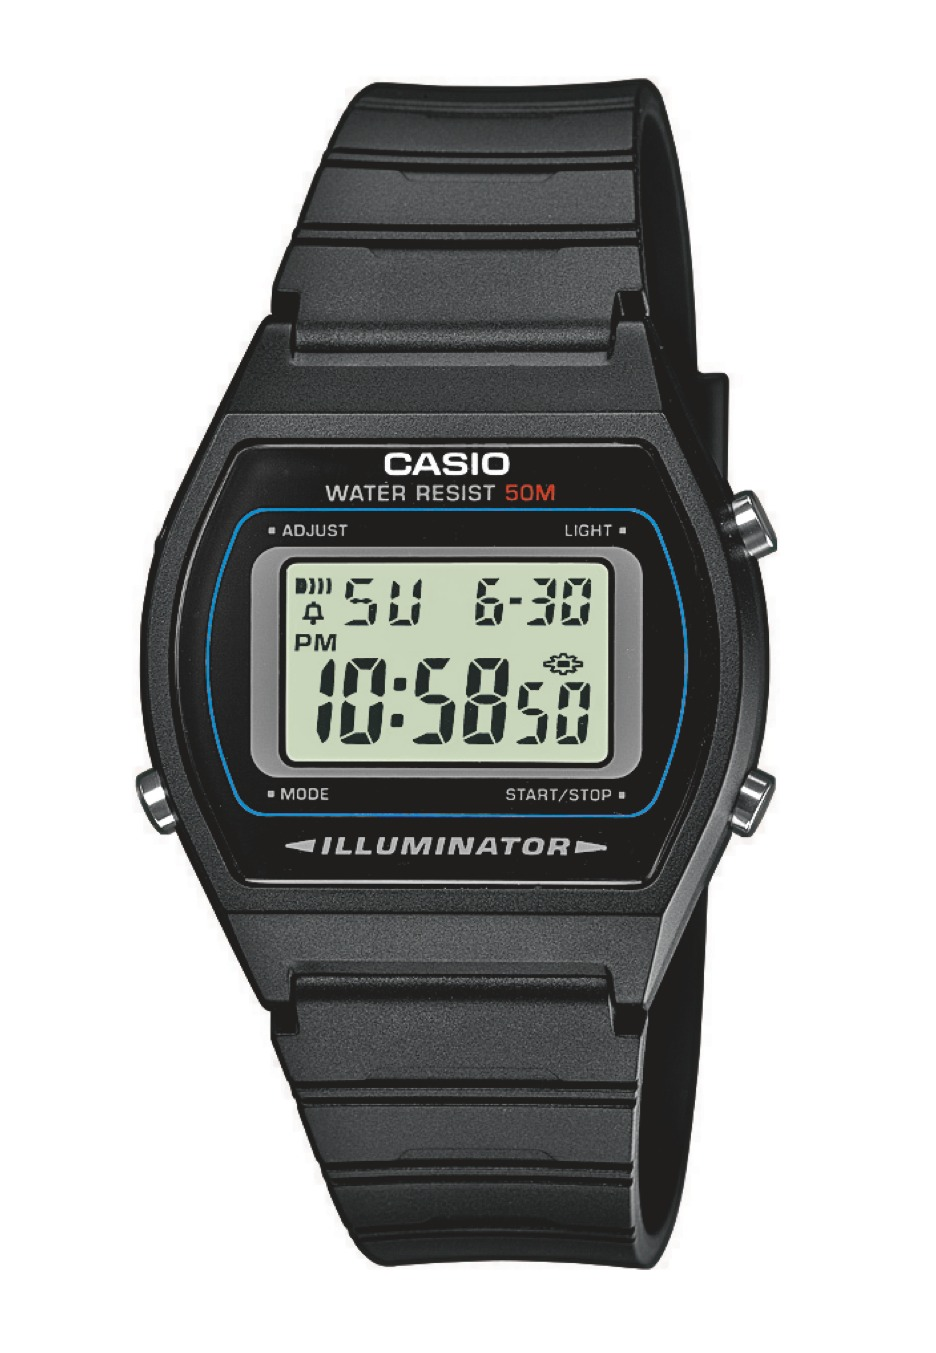 Casio W-202 User Manual / Module 3294